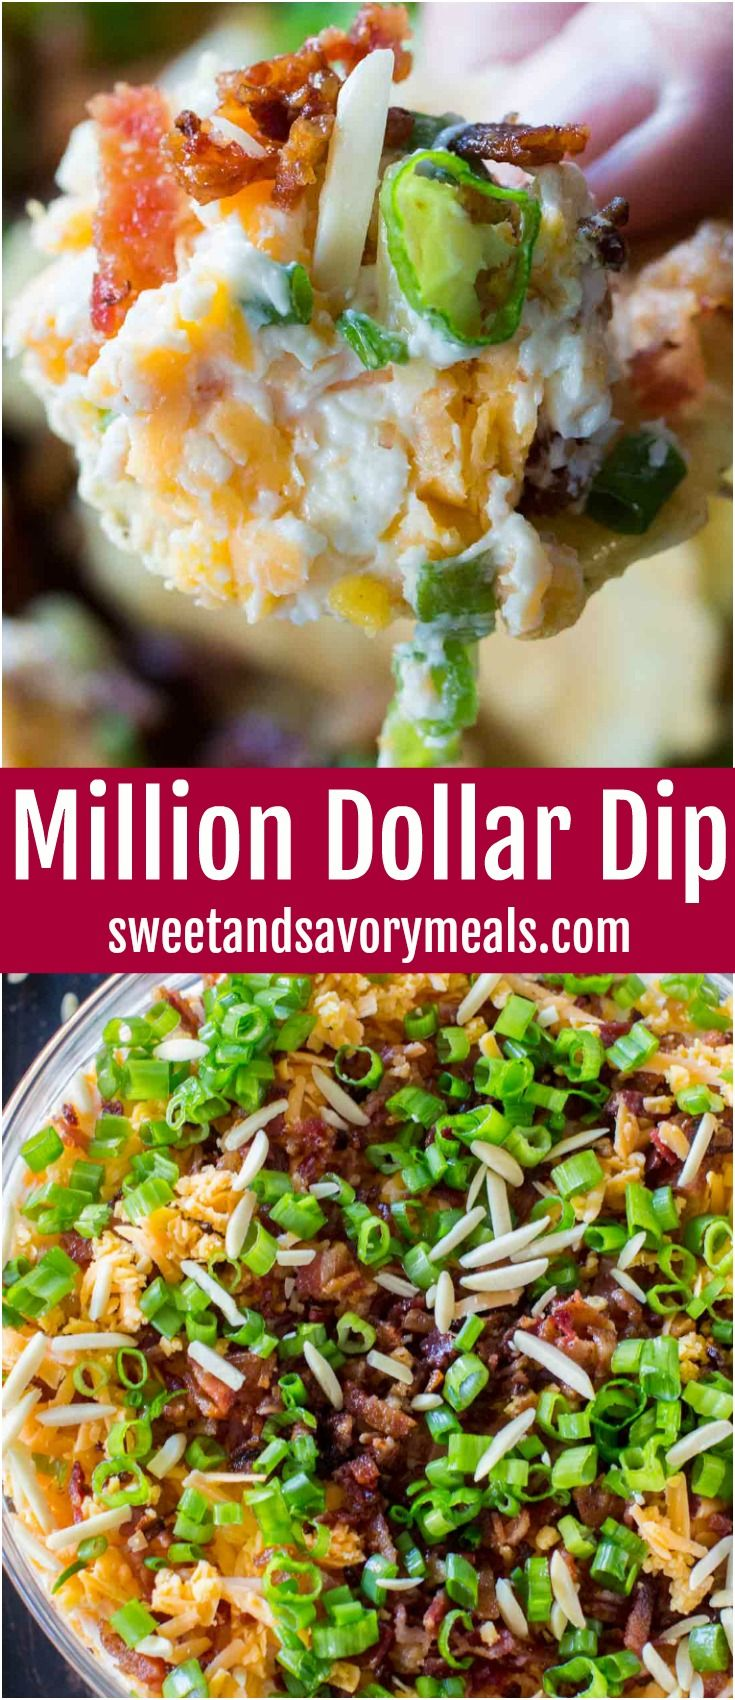 Million Dollar Dip is the best cheese dip that you can make! Layers of creamy cheese, sharp cheddar cheese, bacon, slivered almonds and green onions! #cheese #cheesedip #appetizer #partyfood #milliondollardip